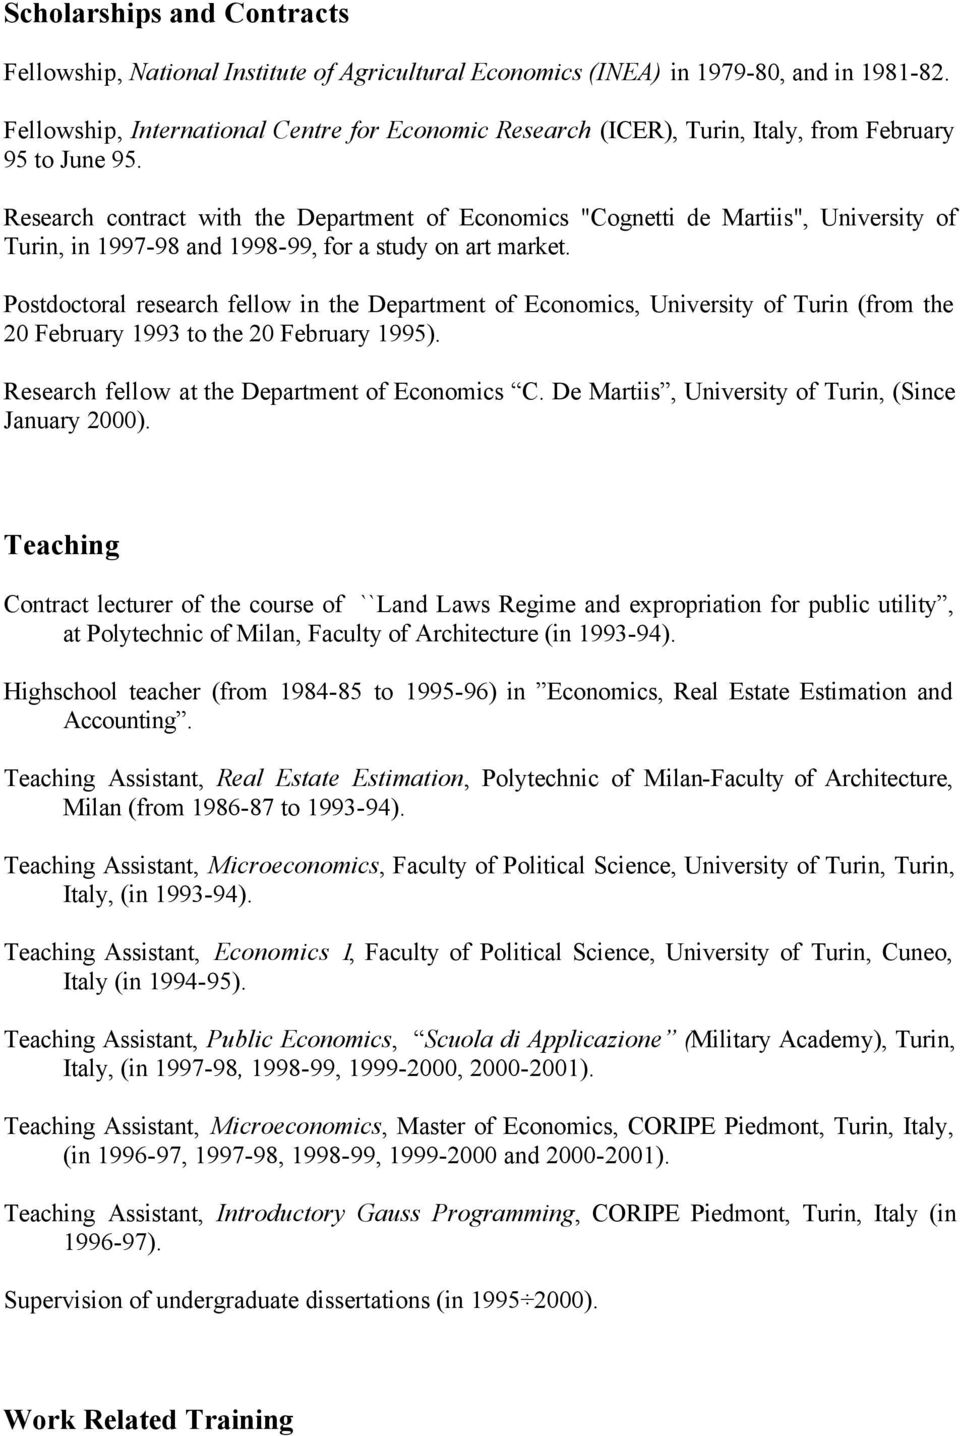 "Research contract with the Department of Economics ""Cognetti de Martiis"", University of Turin, in 1997-98 and 1998-99, for a study on art market."